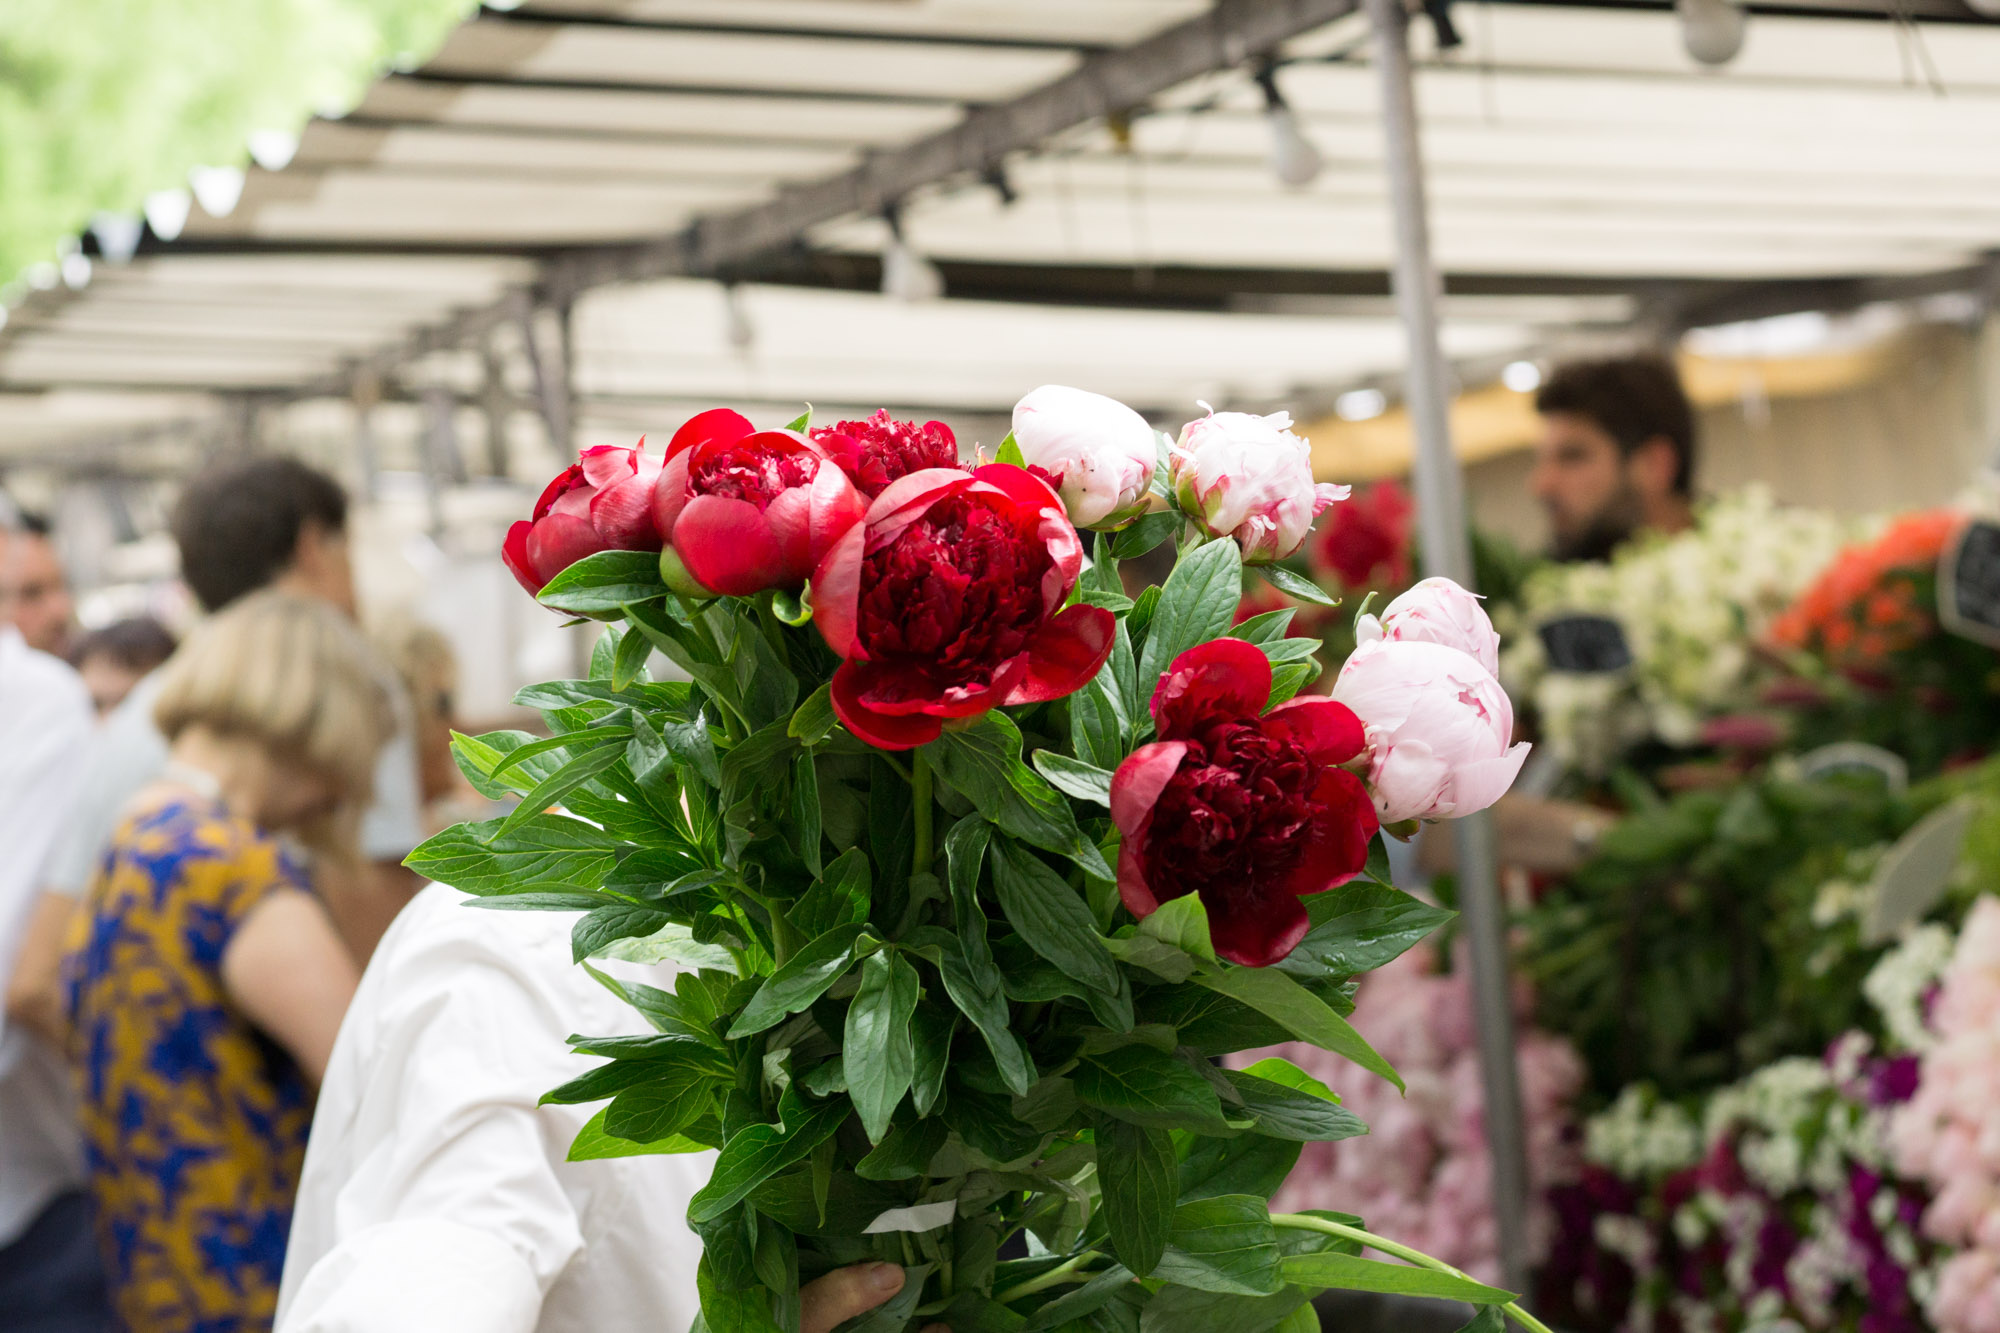 Love peony season?! Discover the best markets in Paris markets for beautiful peonies | Peony season in Paris | Paris Flower Markets